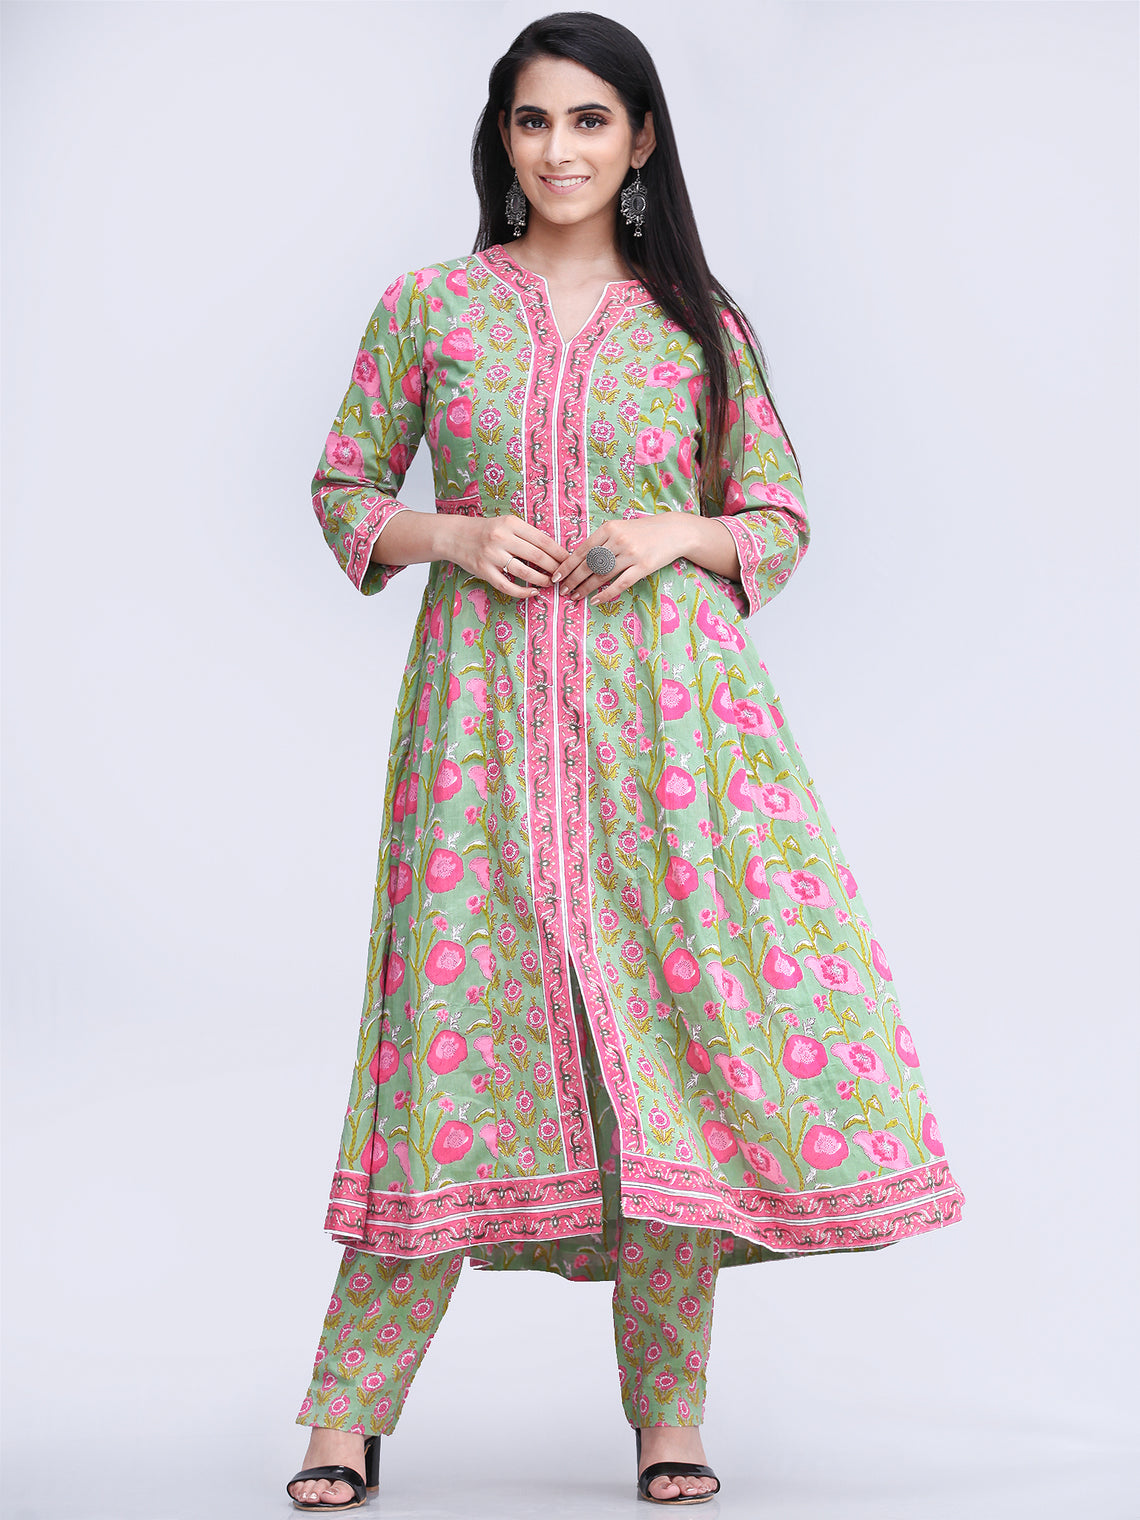 Rozana Rubina - Set of Kurta Pants & Dupatta - KS29I2490D